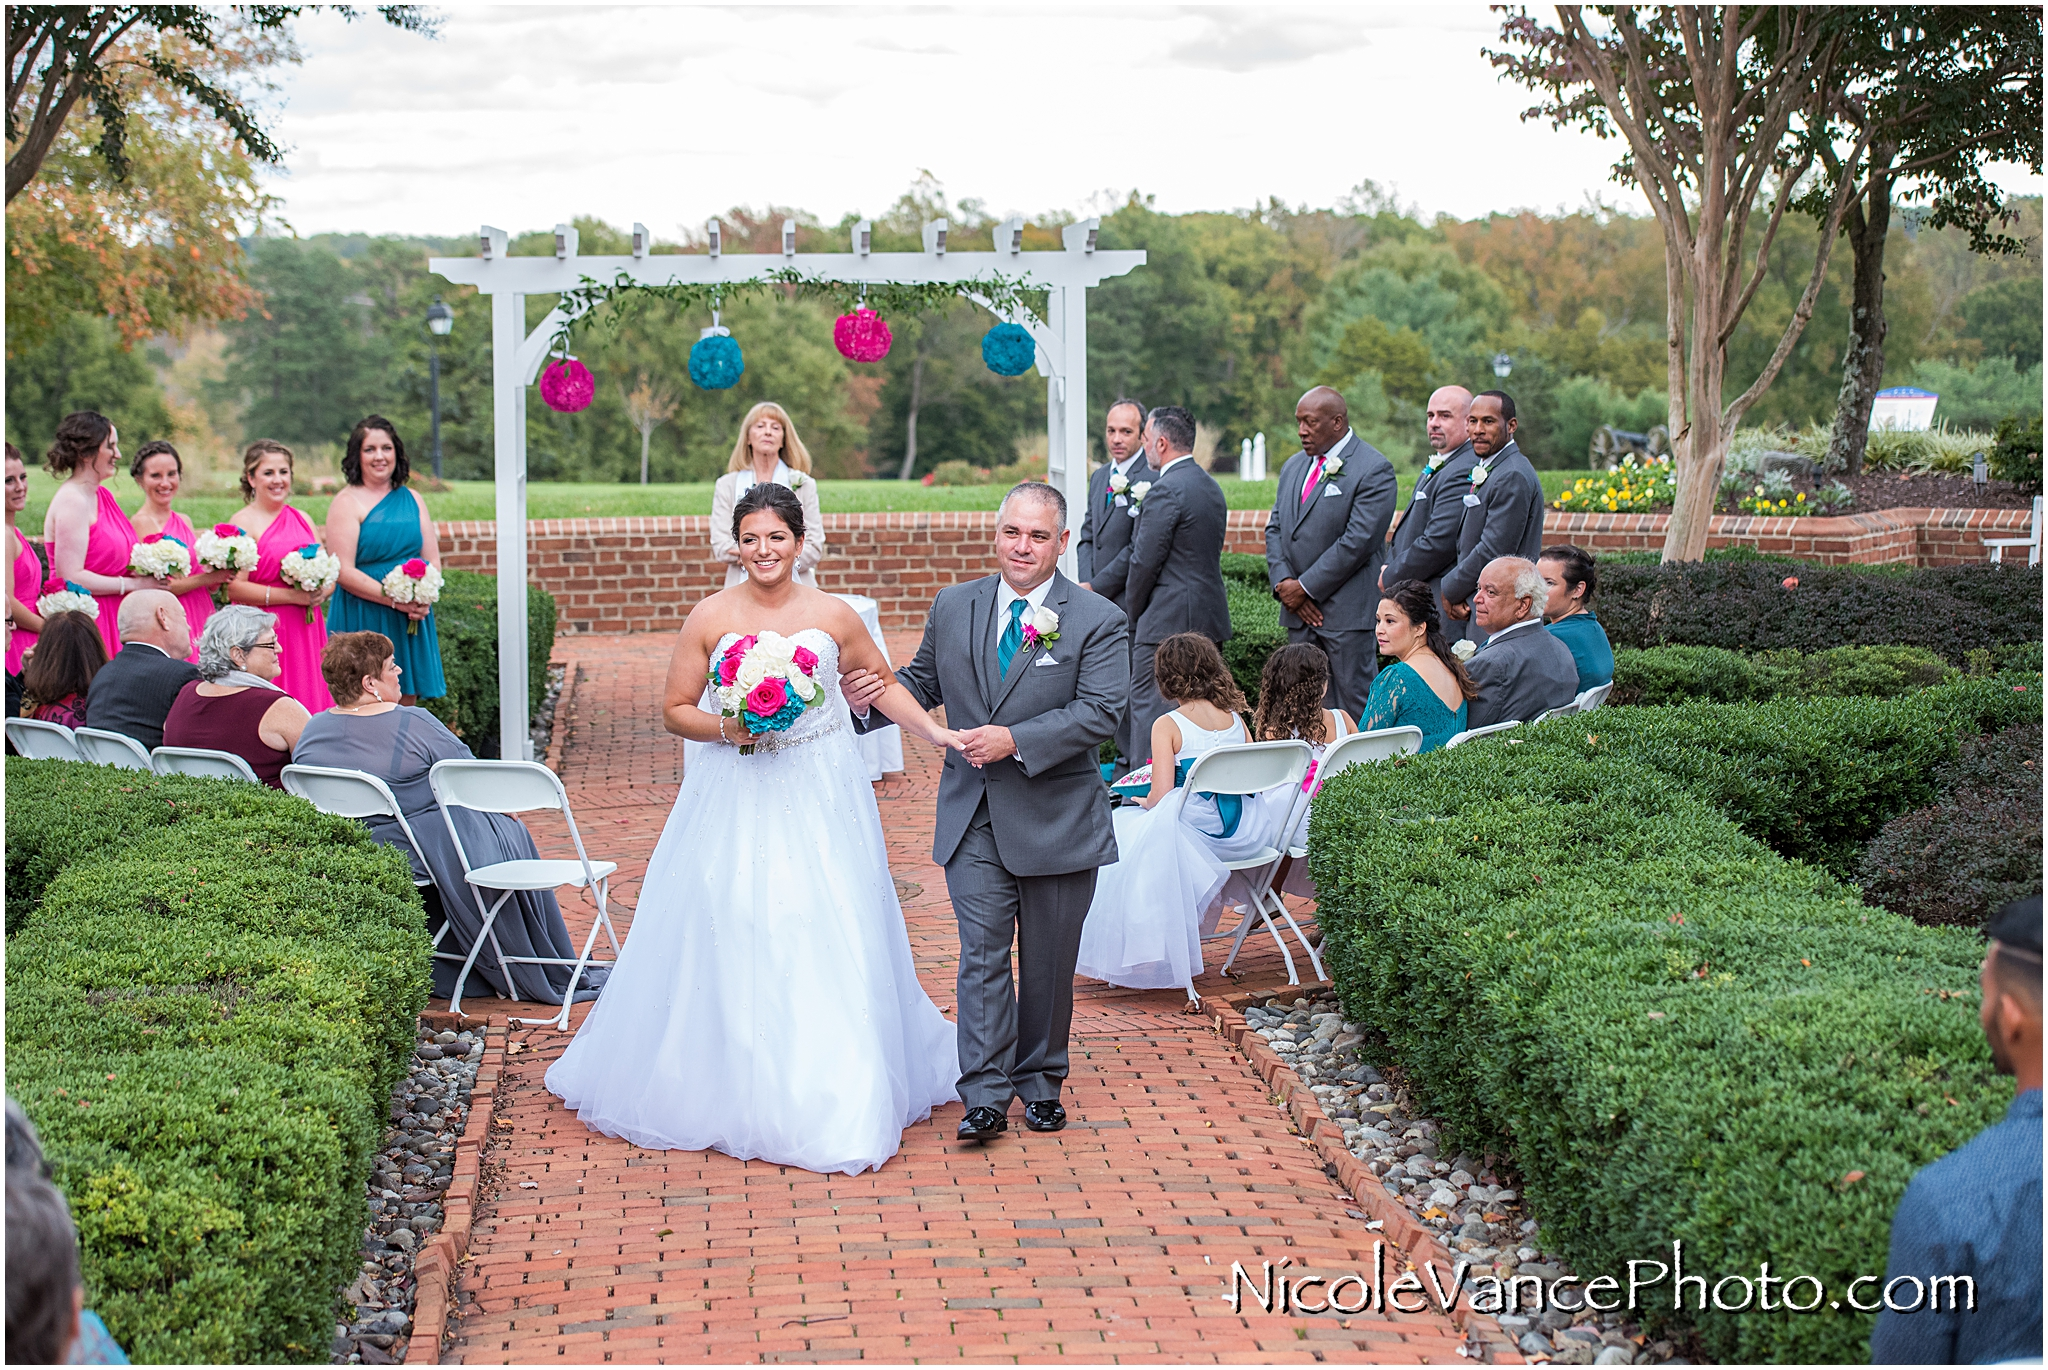 The bride and groom exit the ceremony at Virginia Crossings.